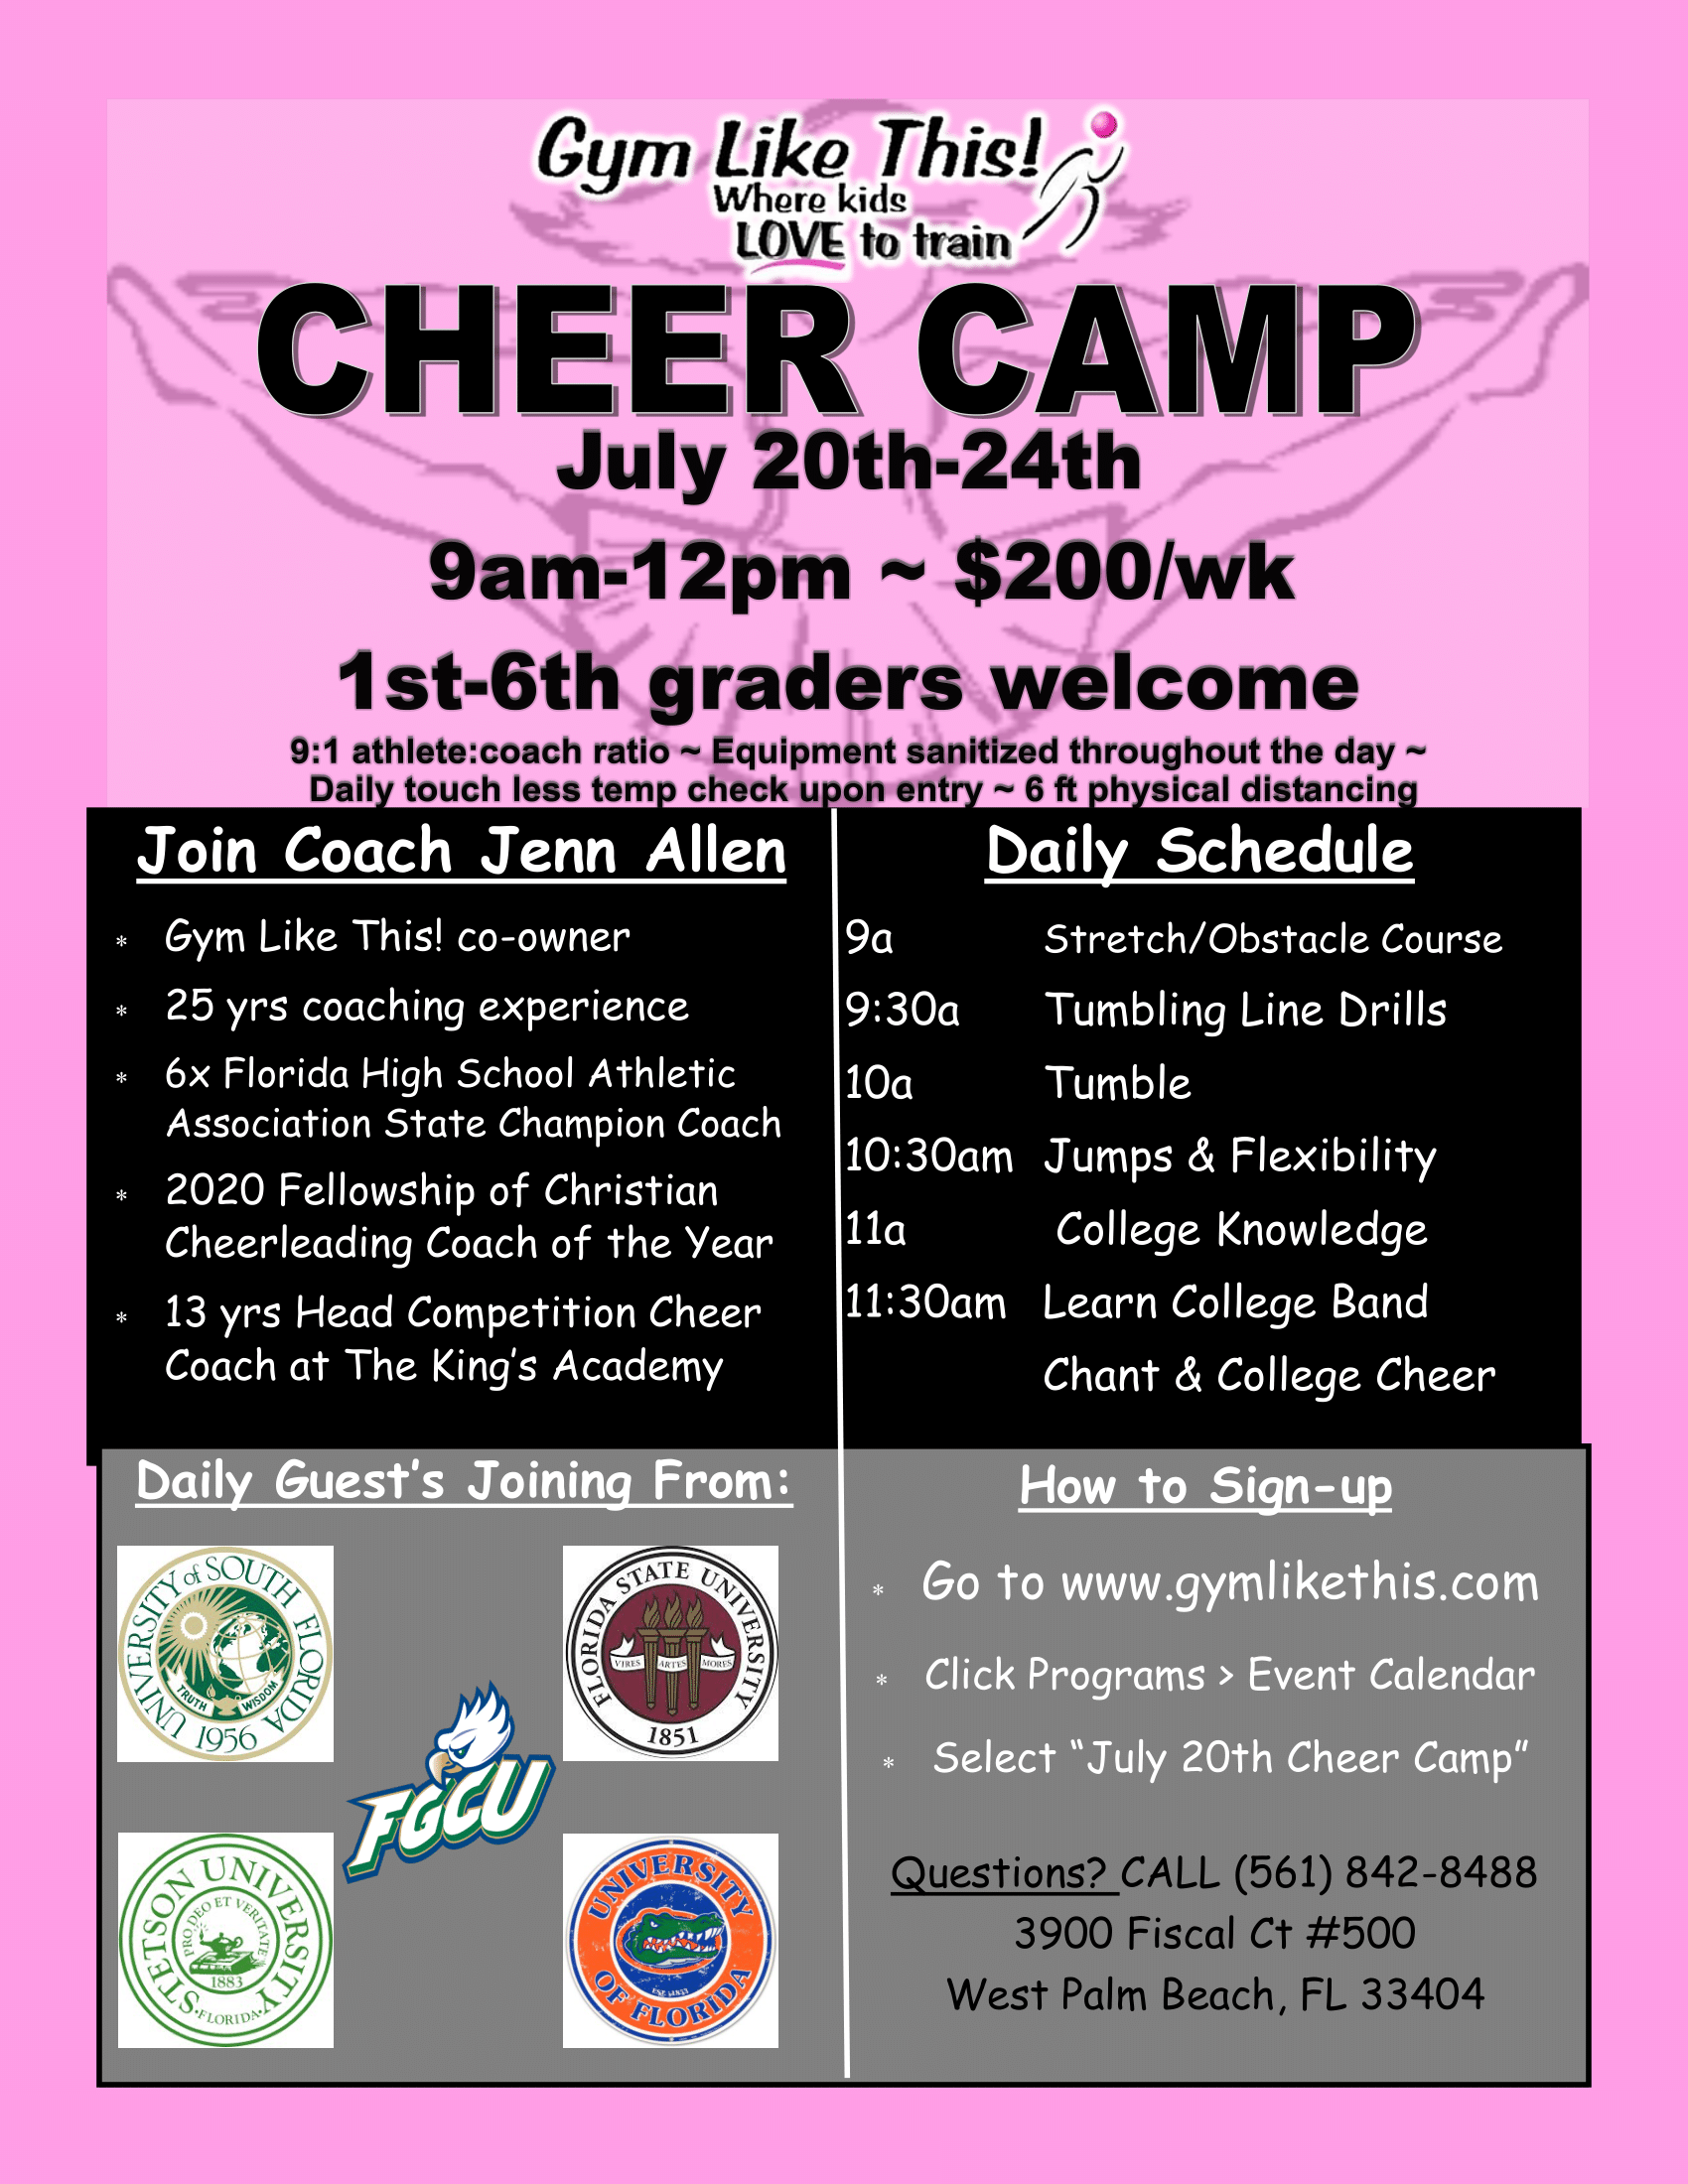 Cheer Camp Flyer July 20 2020-1